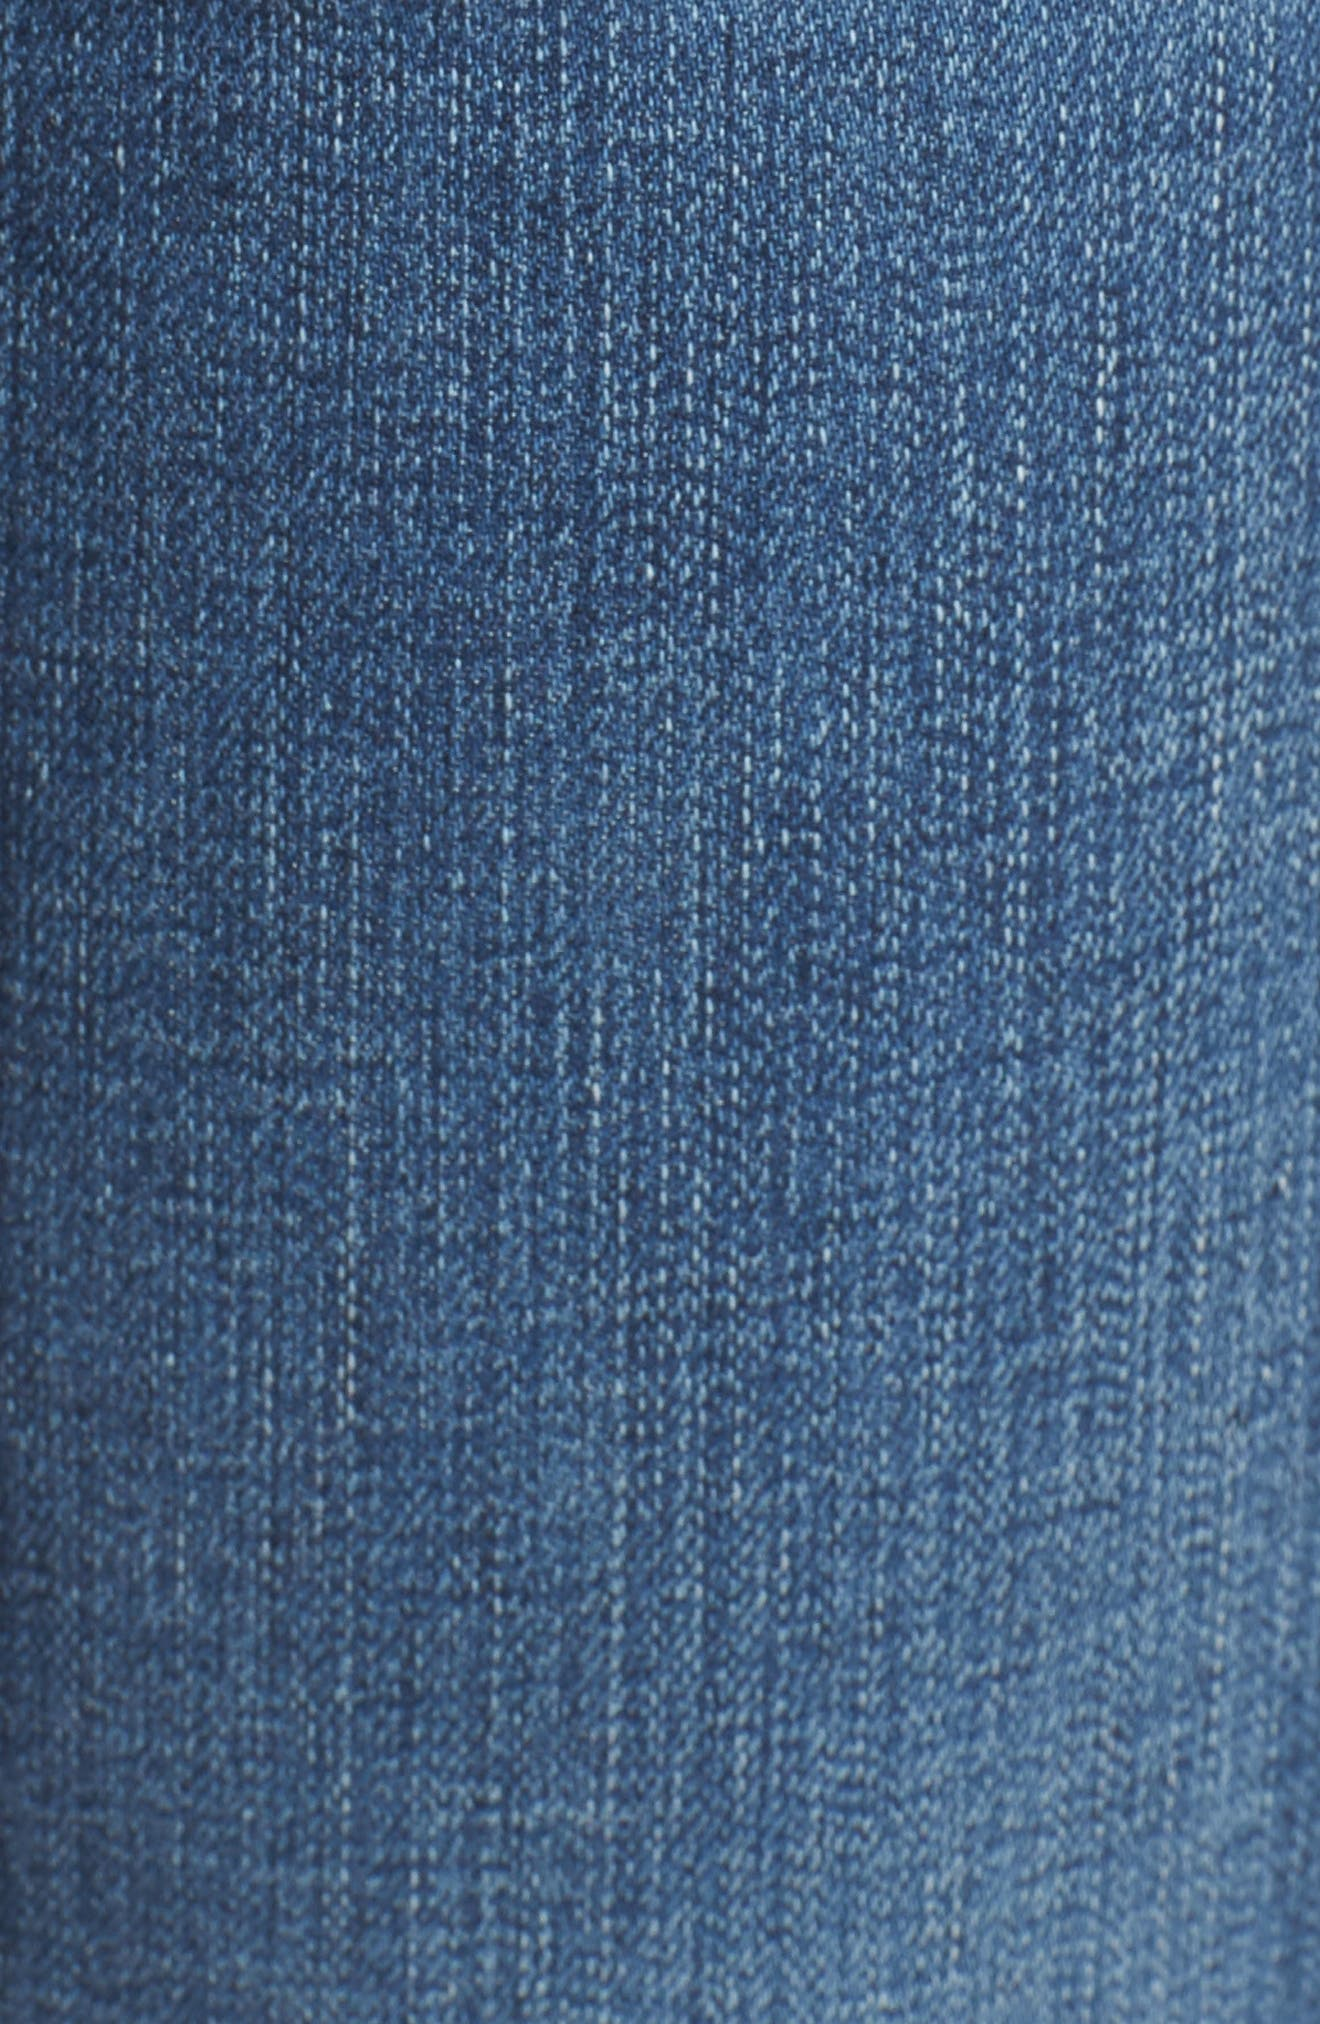 Prima Ripped Roll-Up Skinny Jeans,                             Alternate thumbnail 6, color,